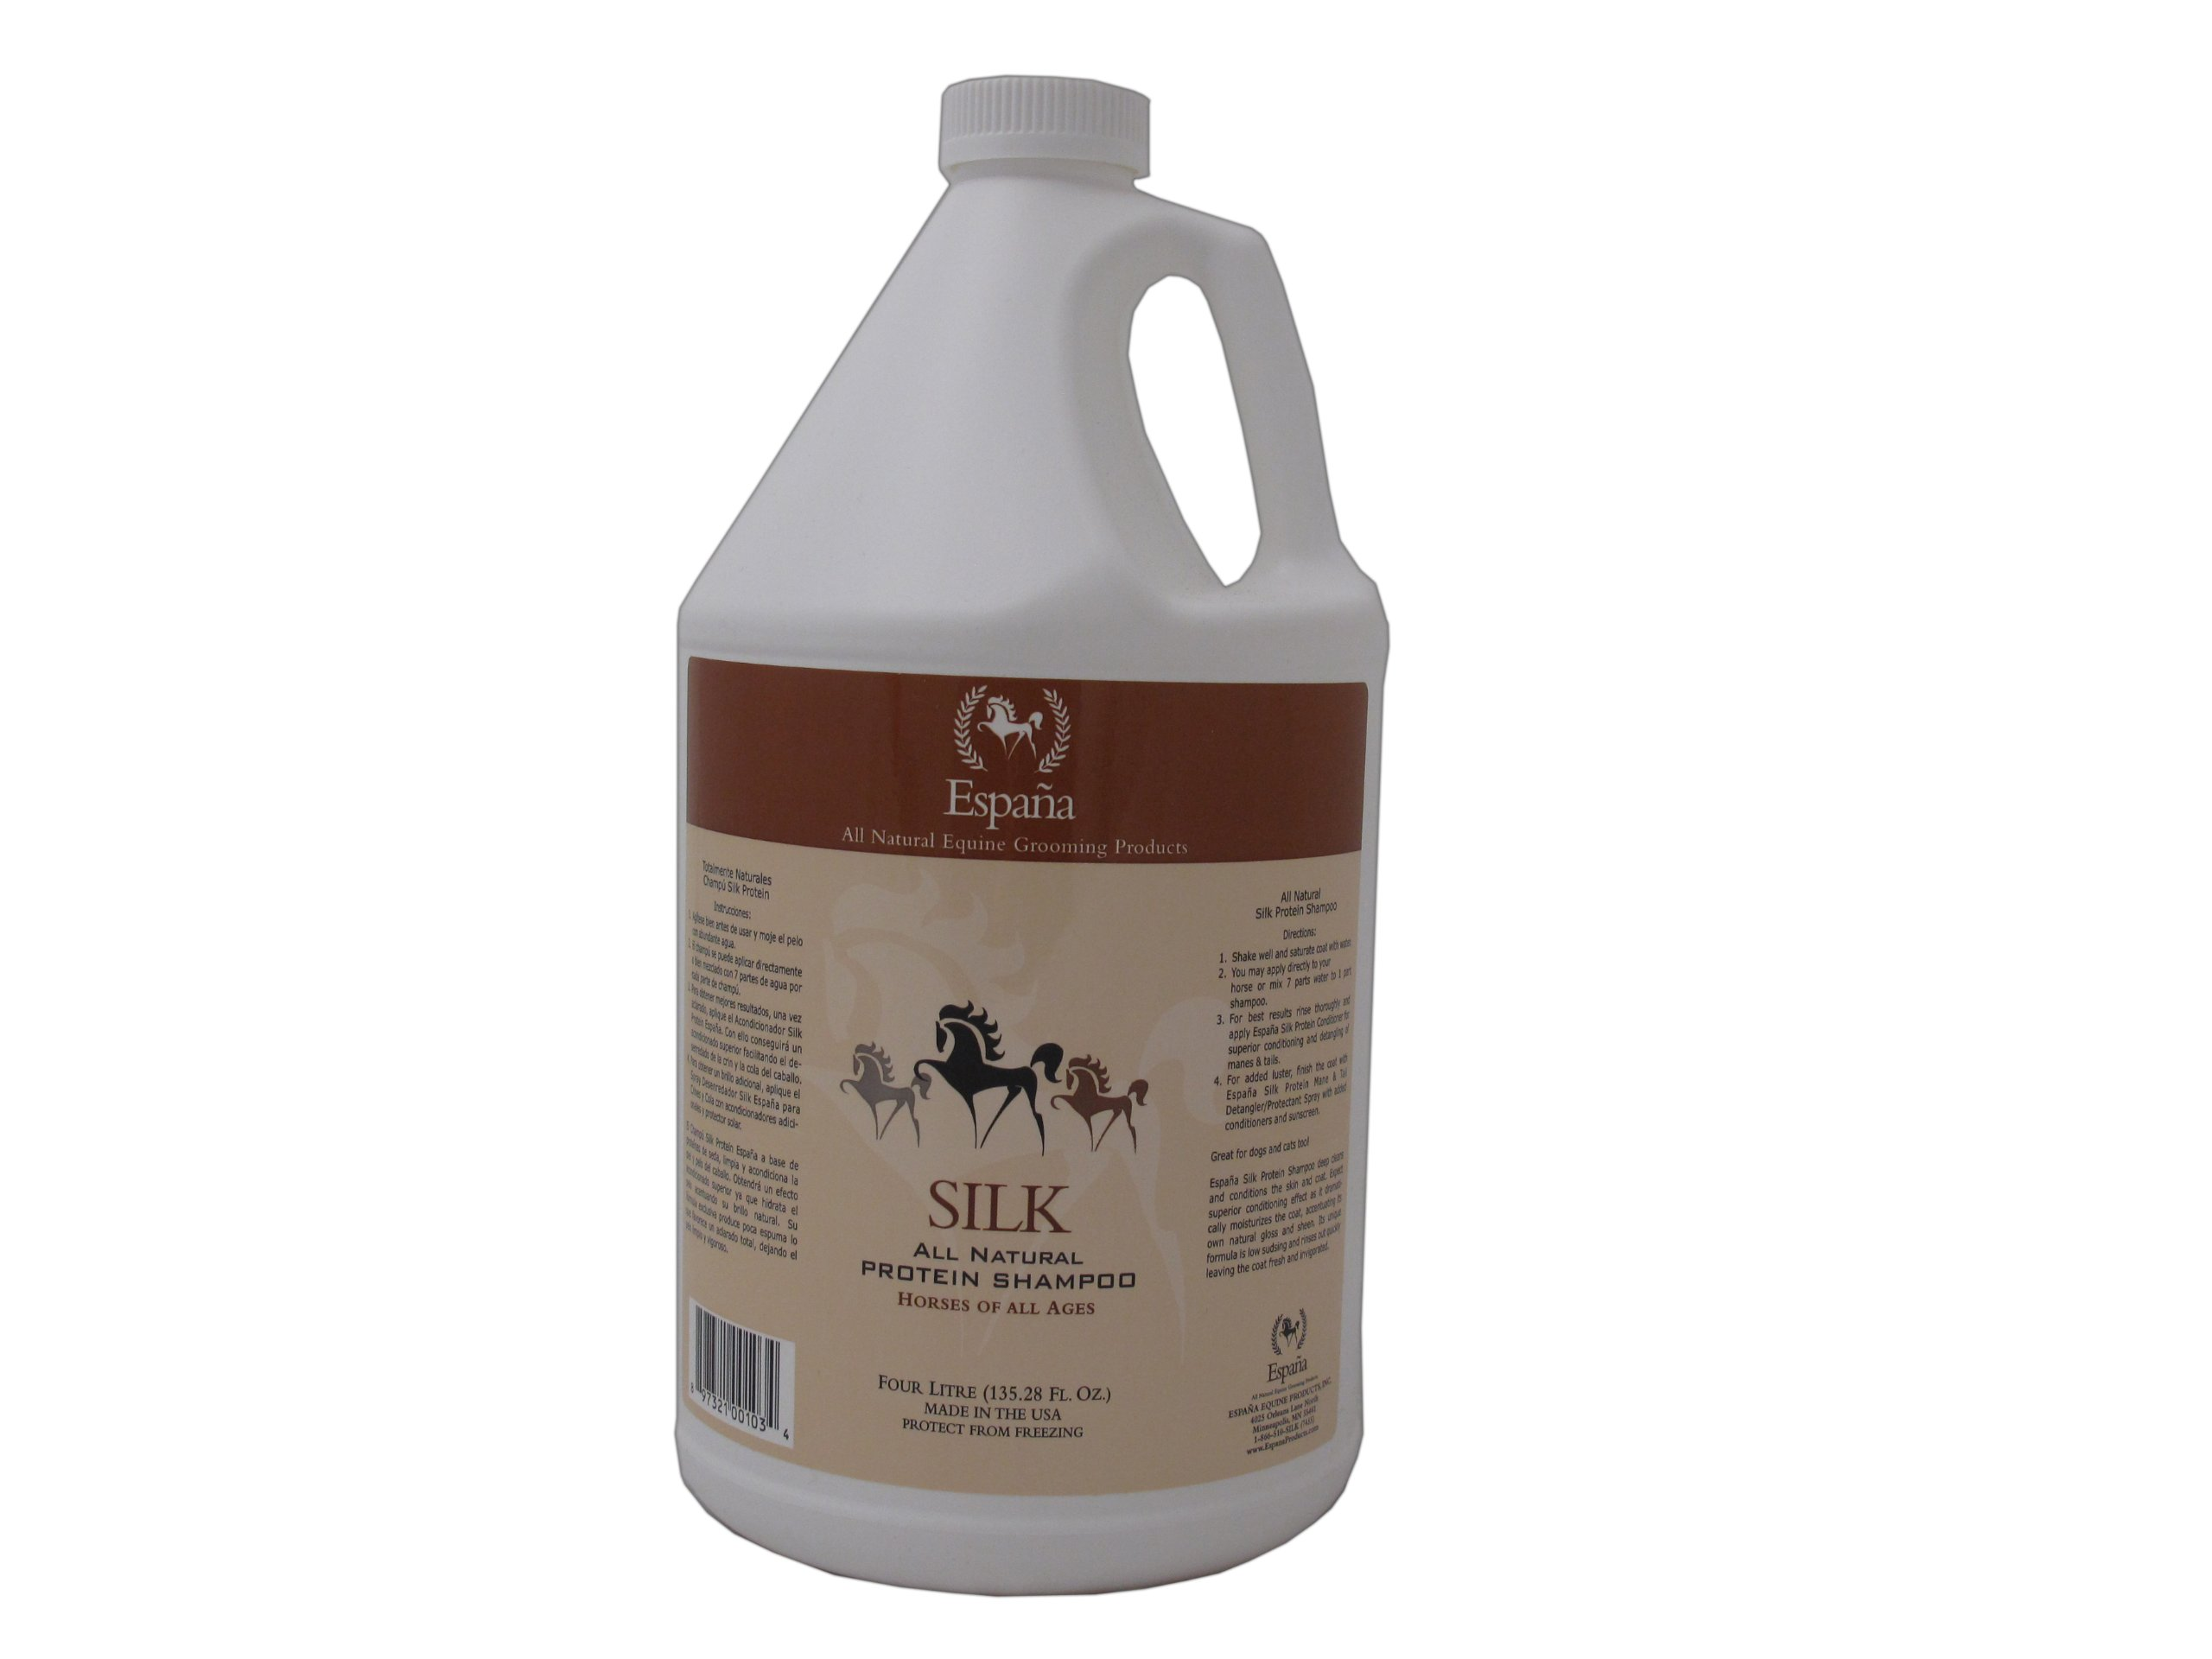 Espana Silk ESP0025E Specially Formulated Silk Protein Shampoo for Horses, 135.28-Ounce by EspanaSILK